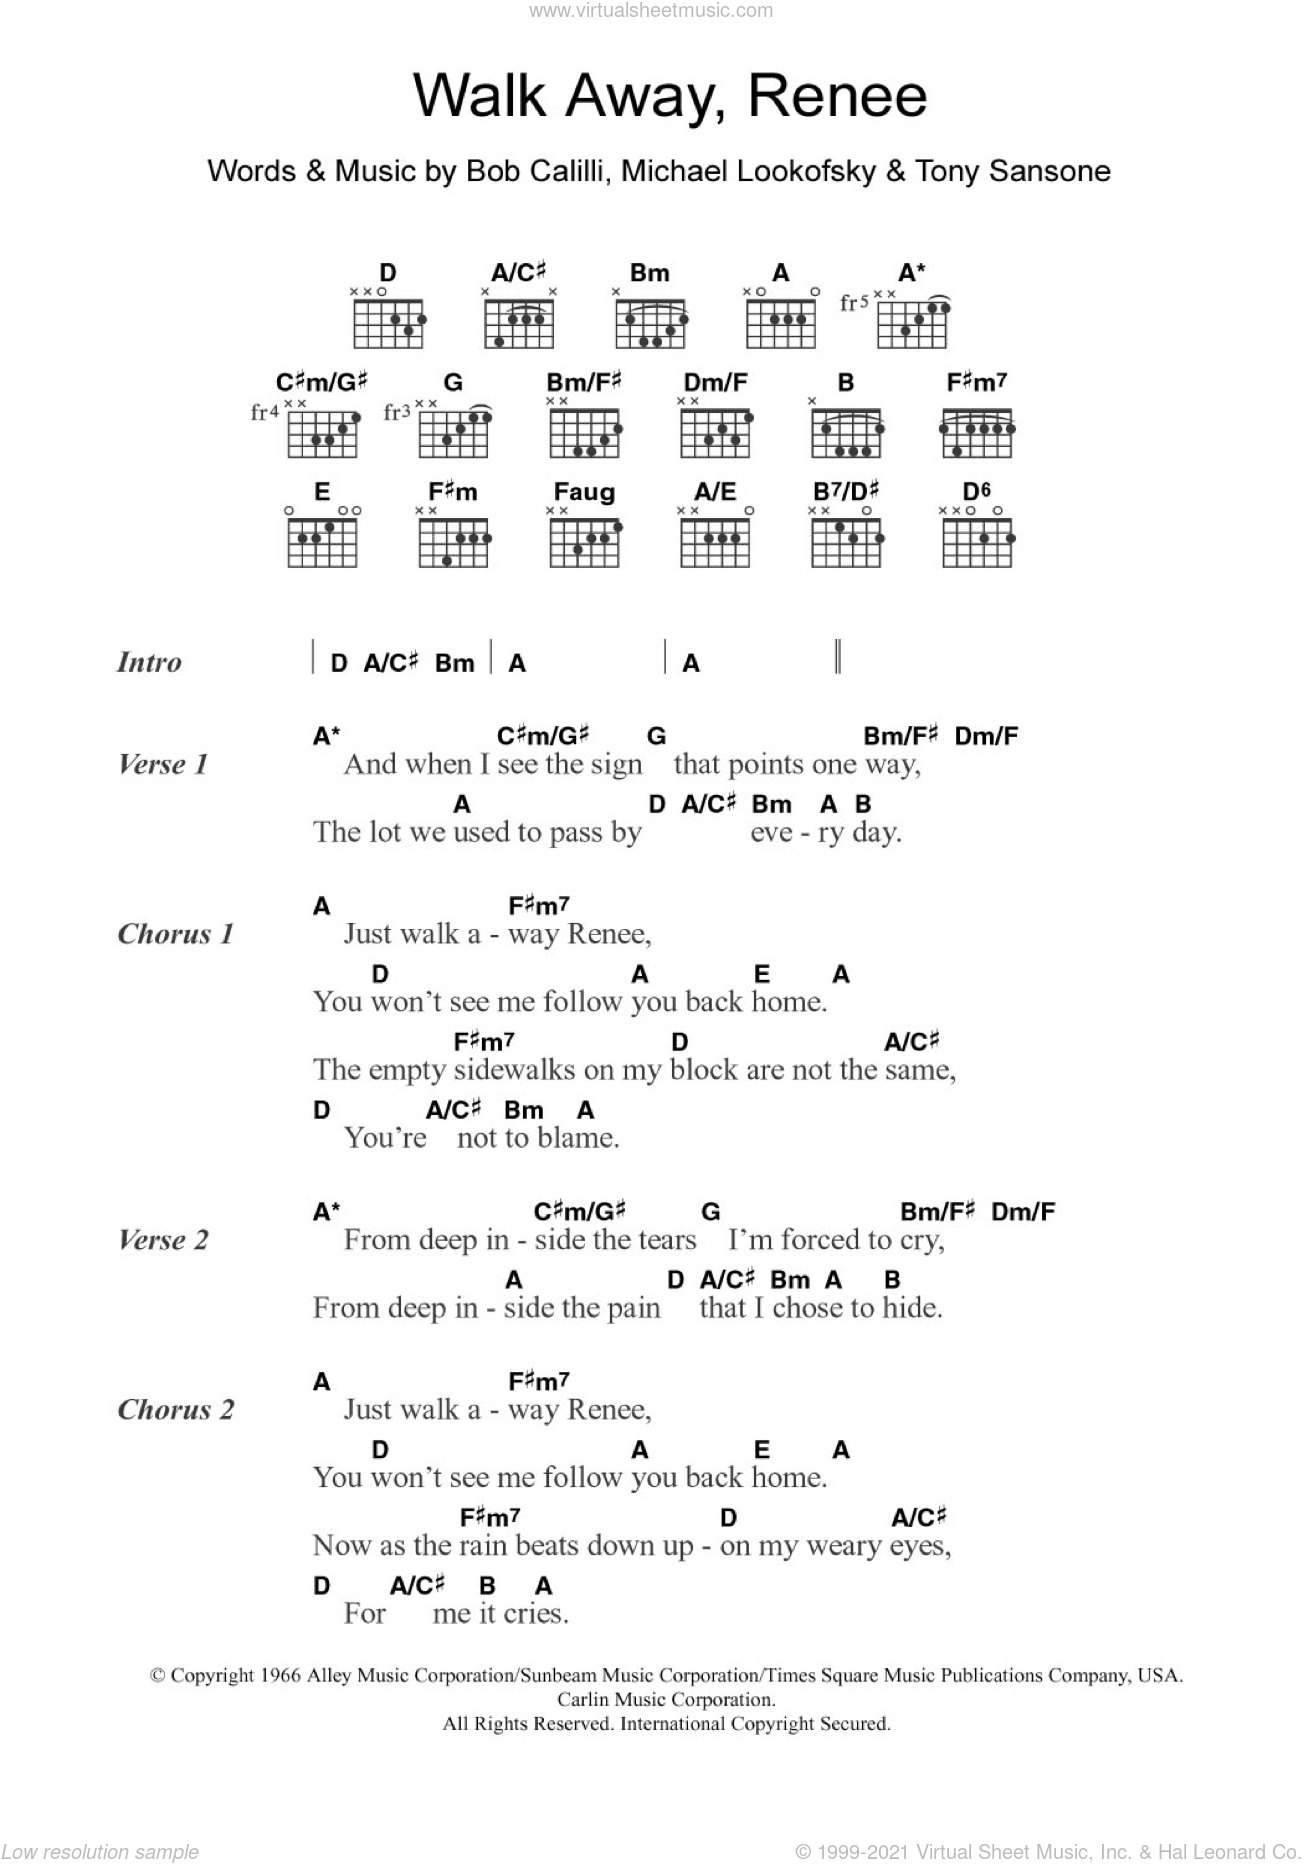 Walk Away, Renee sheet music for guitar (chords) by Tony Sansone, The Four Tops and Bob Calilli. Score Image Preview.